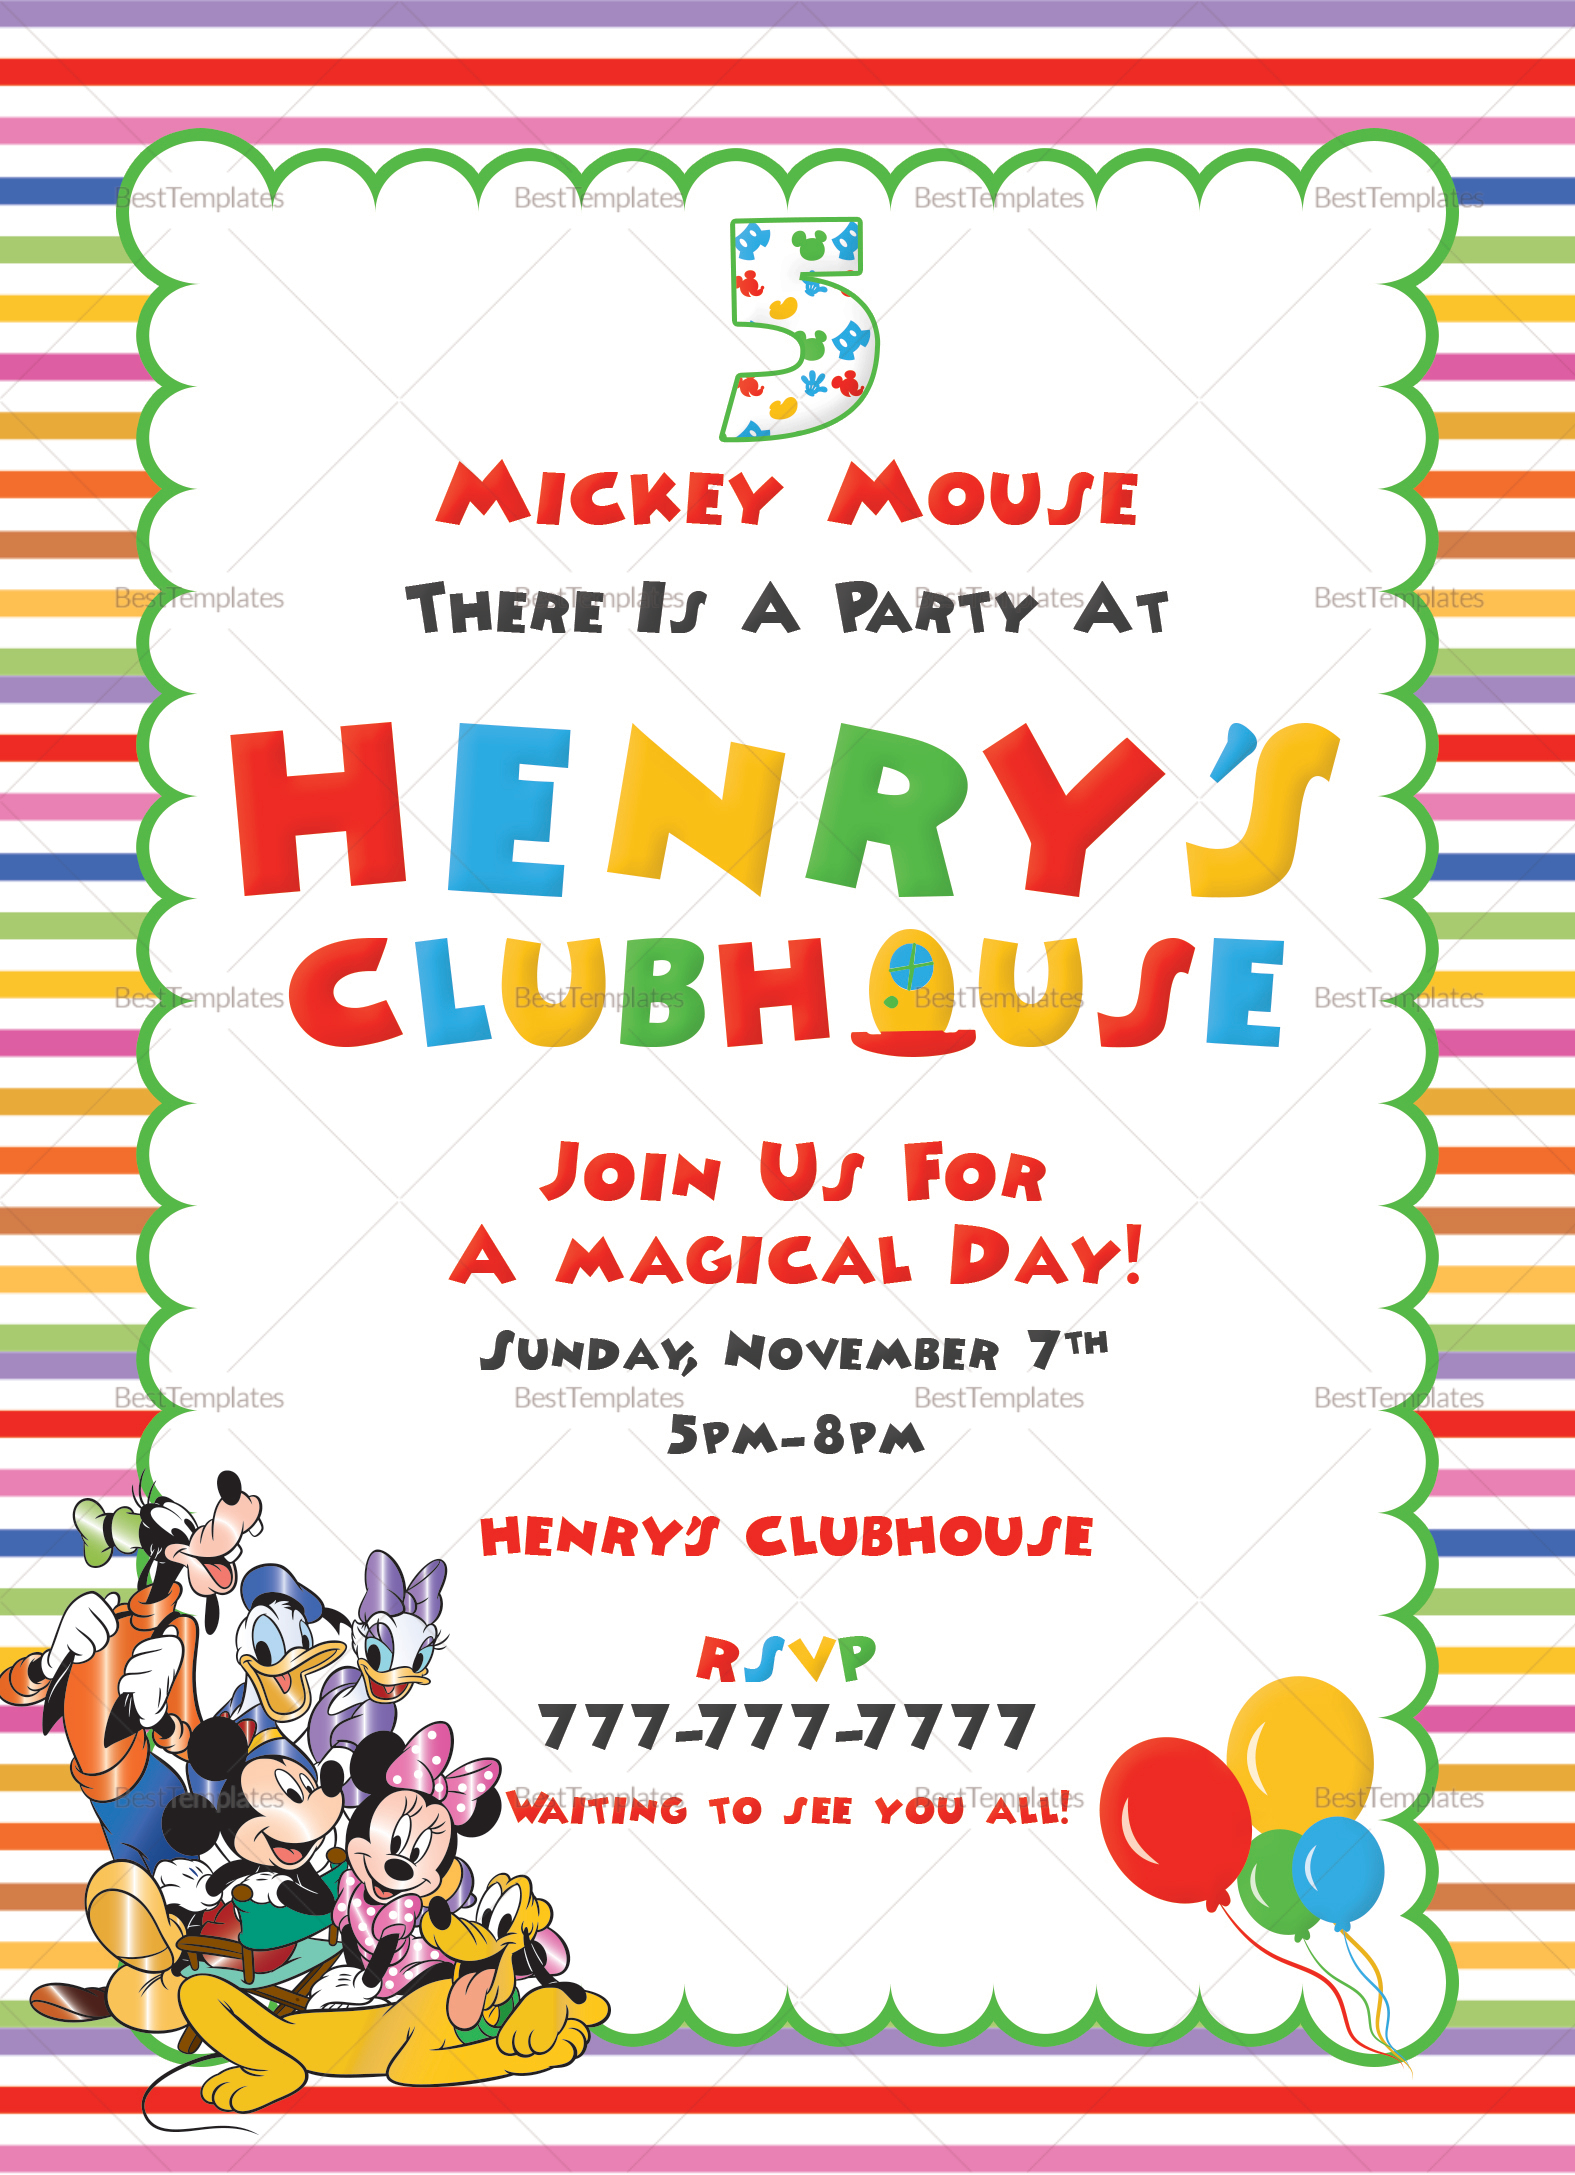 Mickey Mouse Clubhouse Birthday Invitation Design Template